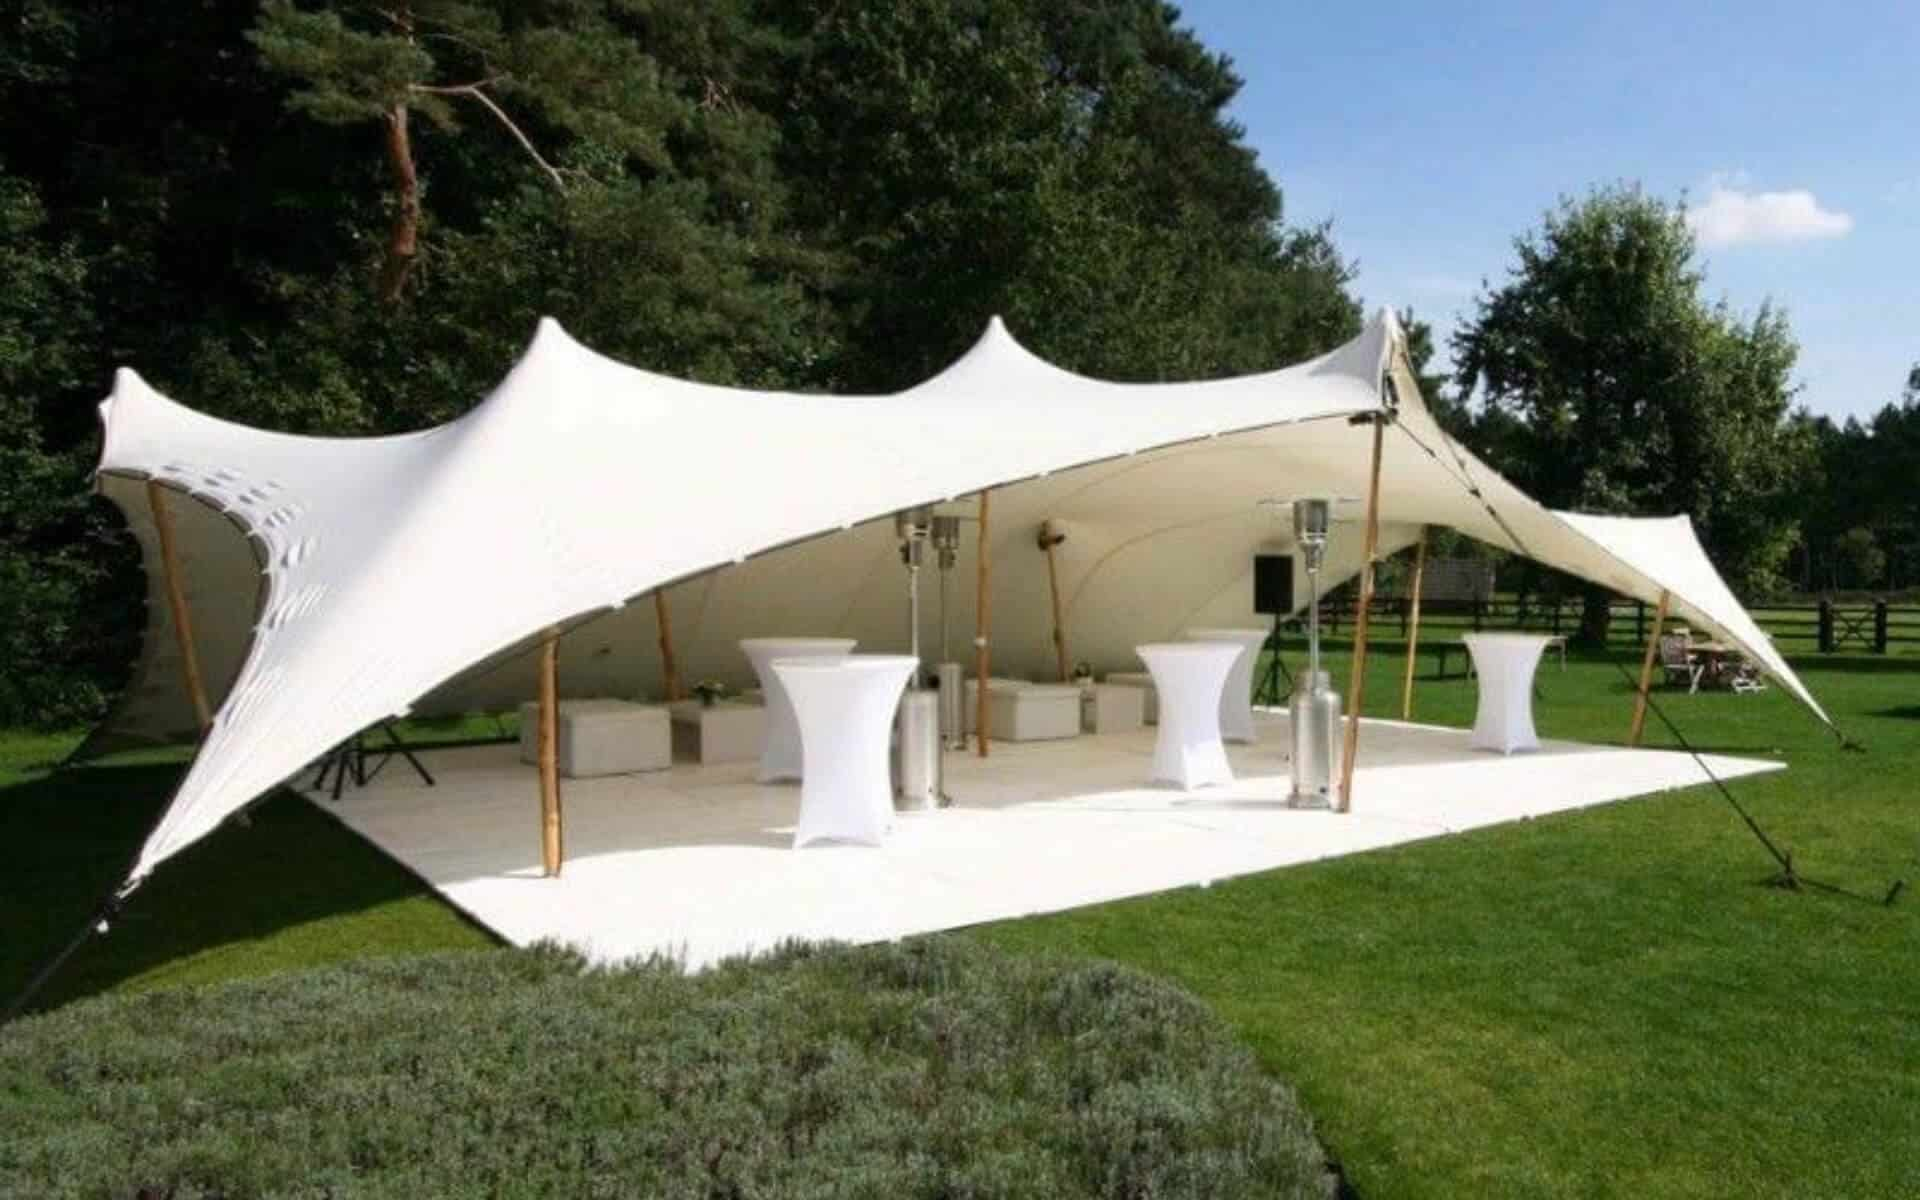 Stretch Tent in park